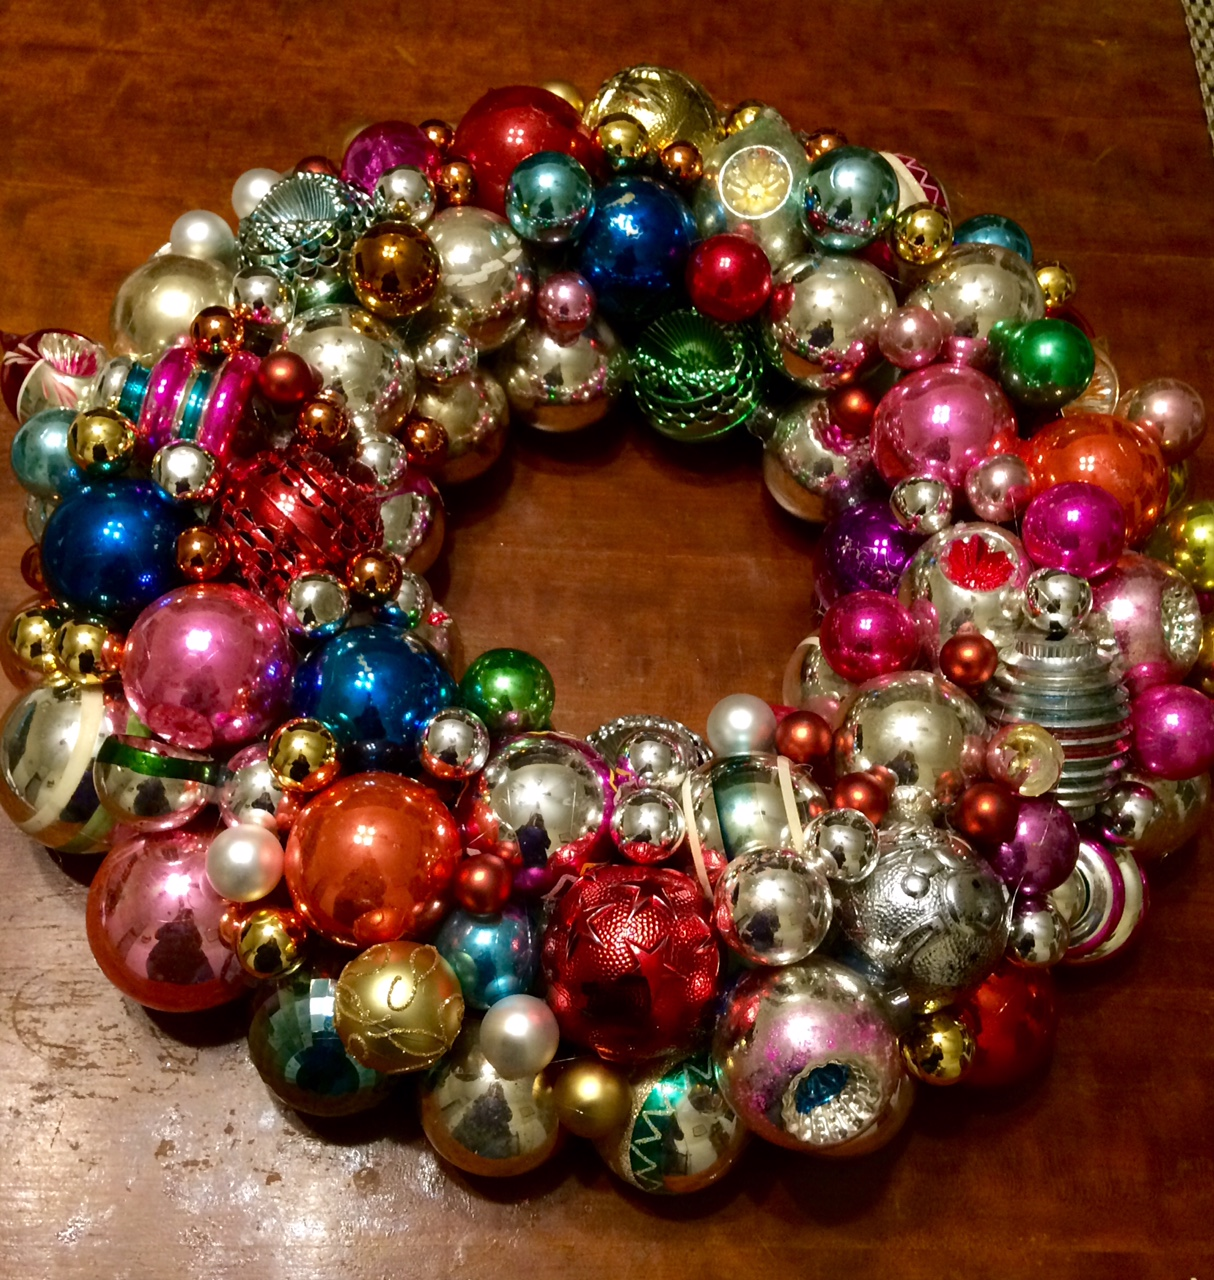 heres a great january activity if you see an opportunity to purchase some 75 off christmas balls make a christmas ball wreath - Christmas Ball Wreath